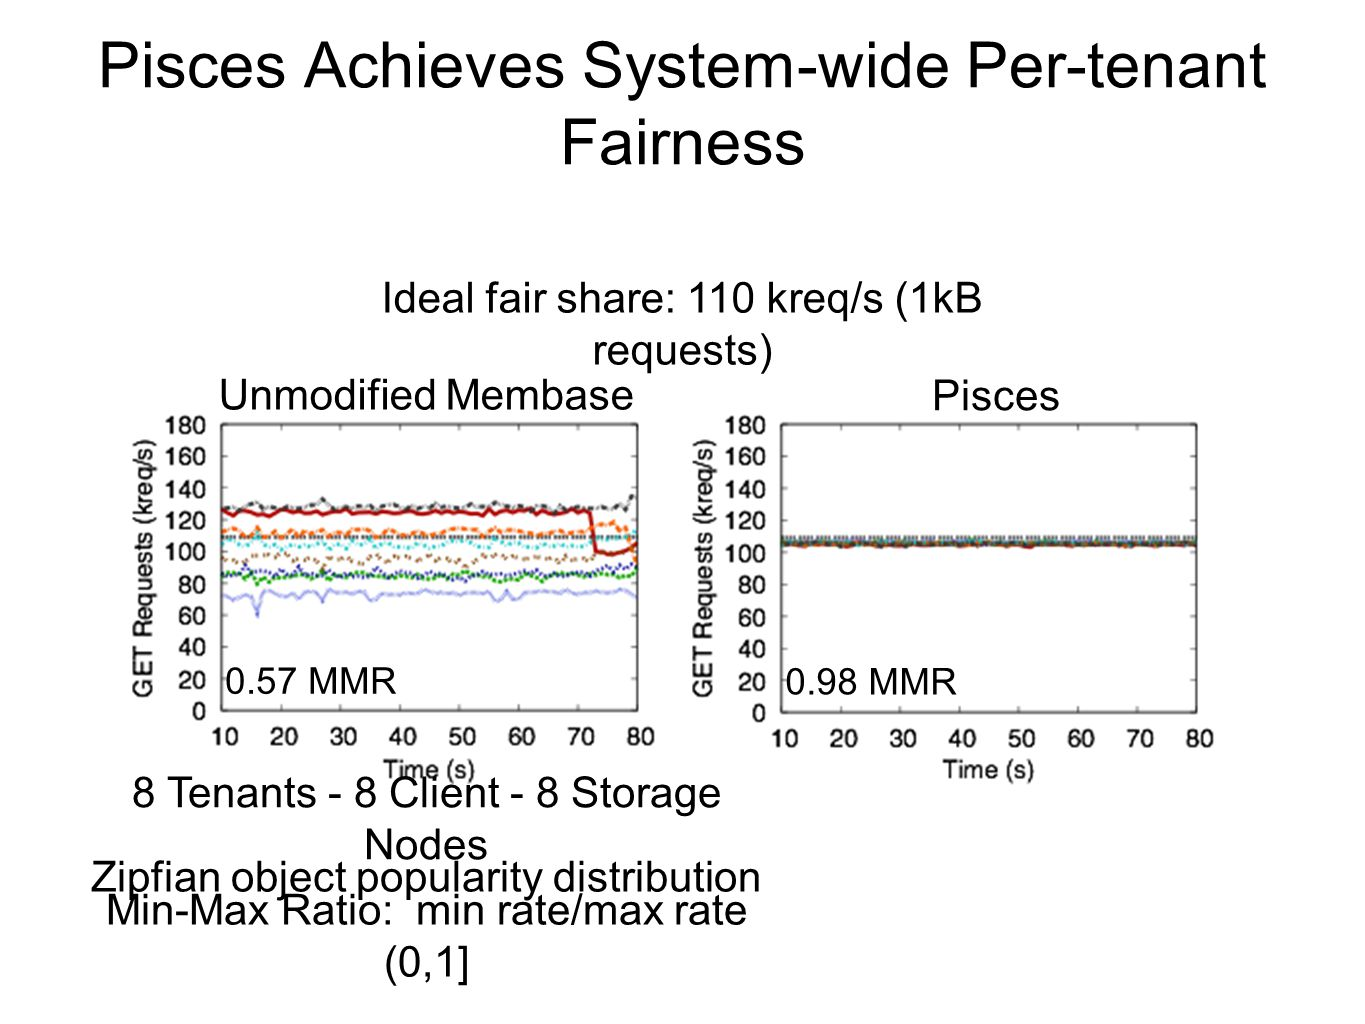 Pisces Achieves System-wide Per-tenant Fairness Unmodified Membase Ideal fair share: 110 kreq/s (1kB requests) Pisces 0.57 MMR 0.98 MMR Min-Max Ratio: min rate/max rate (0,1] 8 Tenants - 8 Client - 8 Storage Nodes Zipfian object popularity distribution